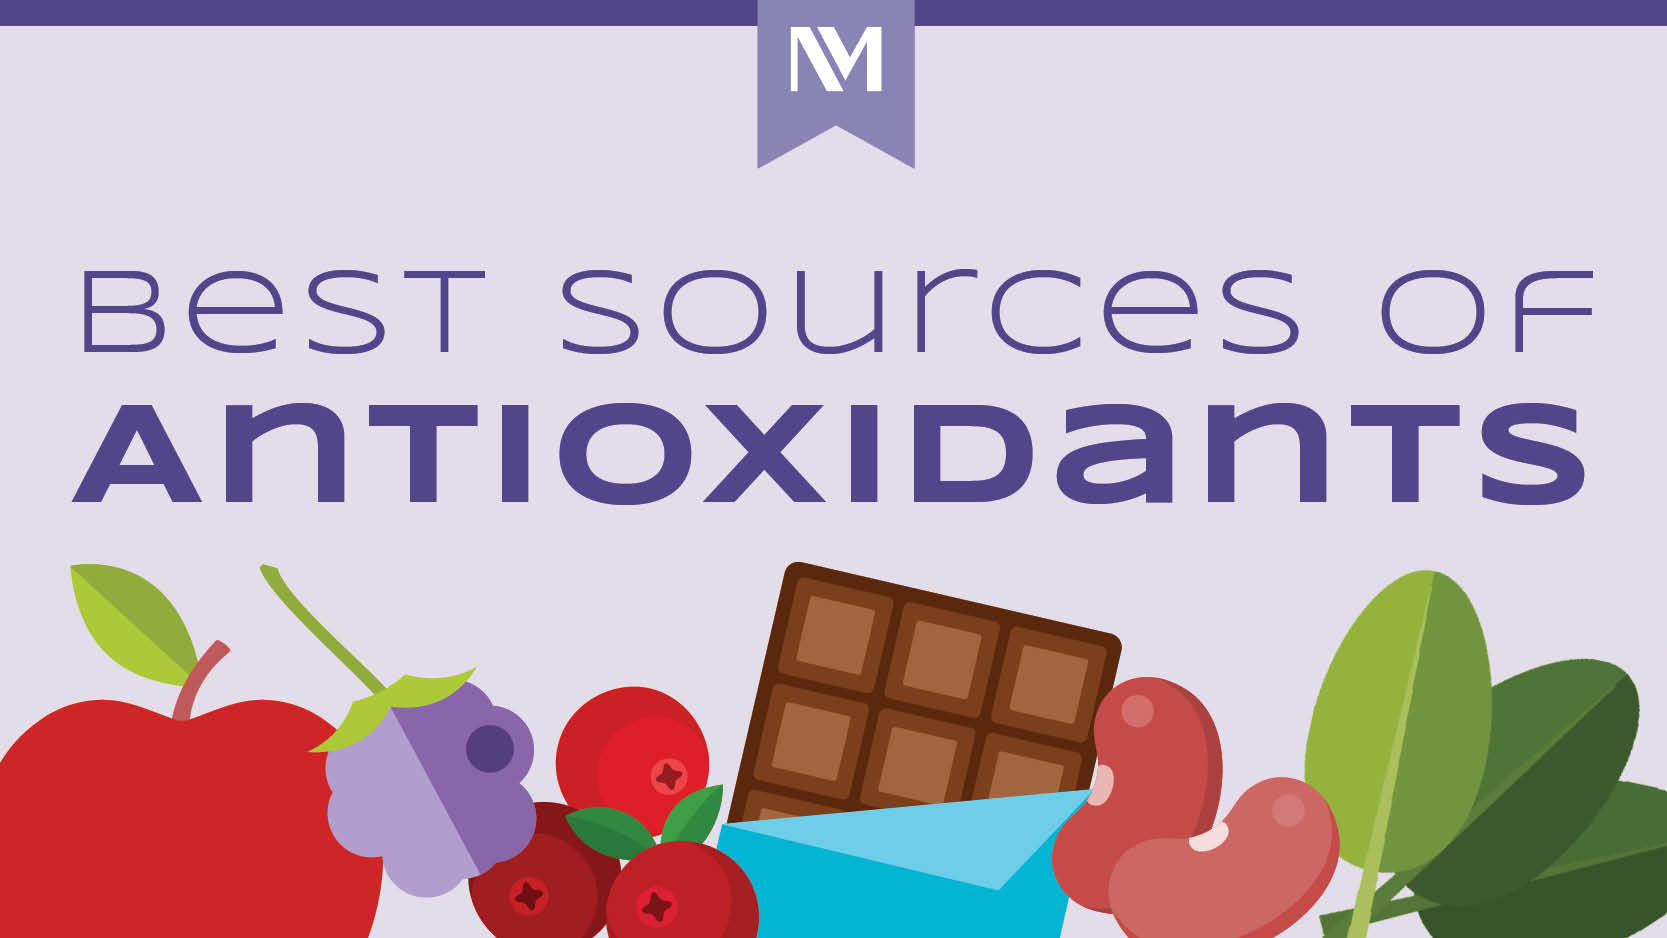 nm-antioxidants_preview